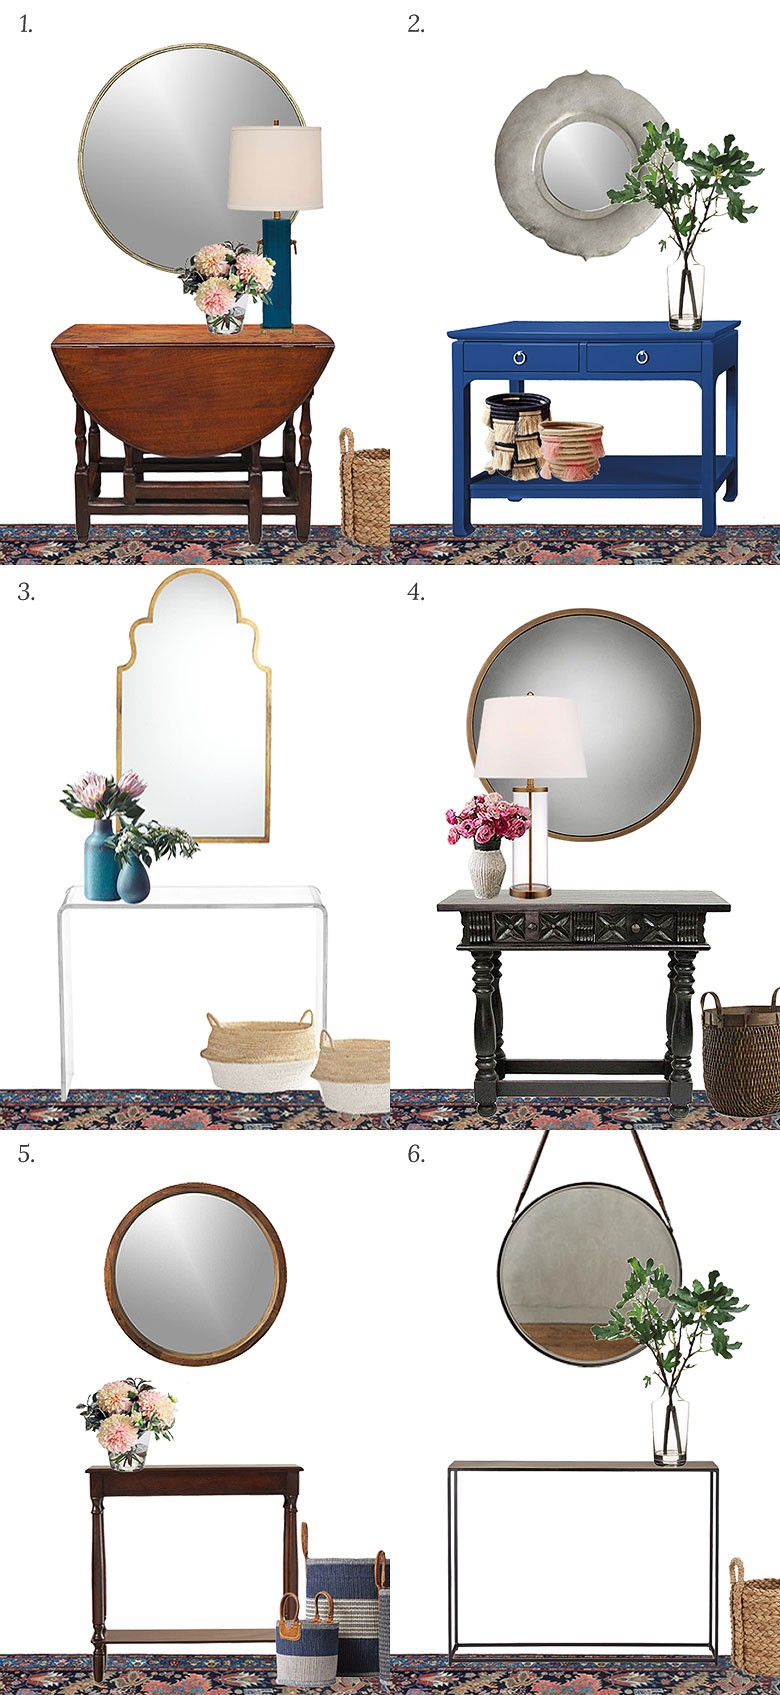 Choosing a console table and mirror for an entryway for Foyer console table and mirror set